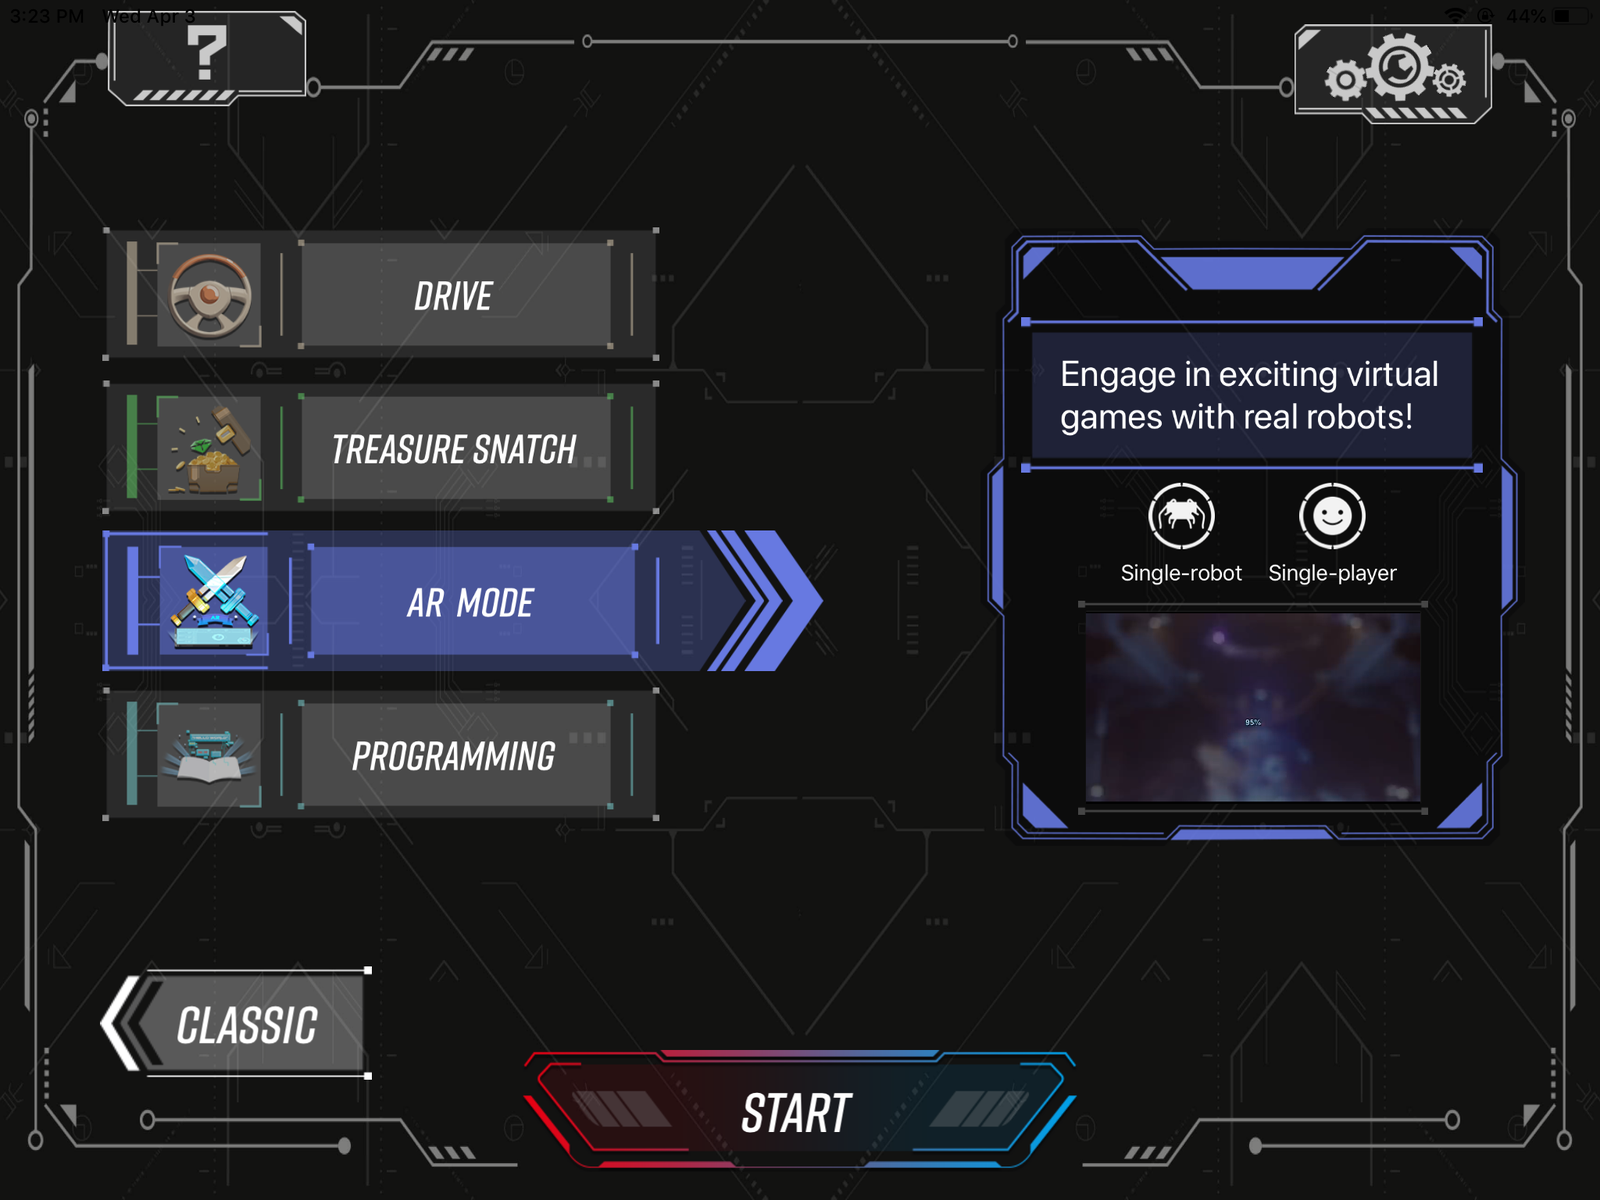 The Augmented Reality mode is the latest addition to the app for players who don't have a second robot to battle.